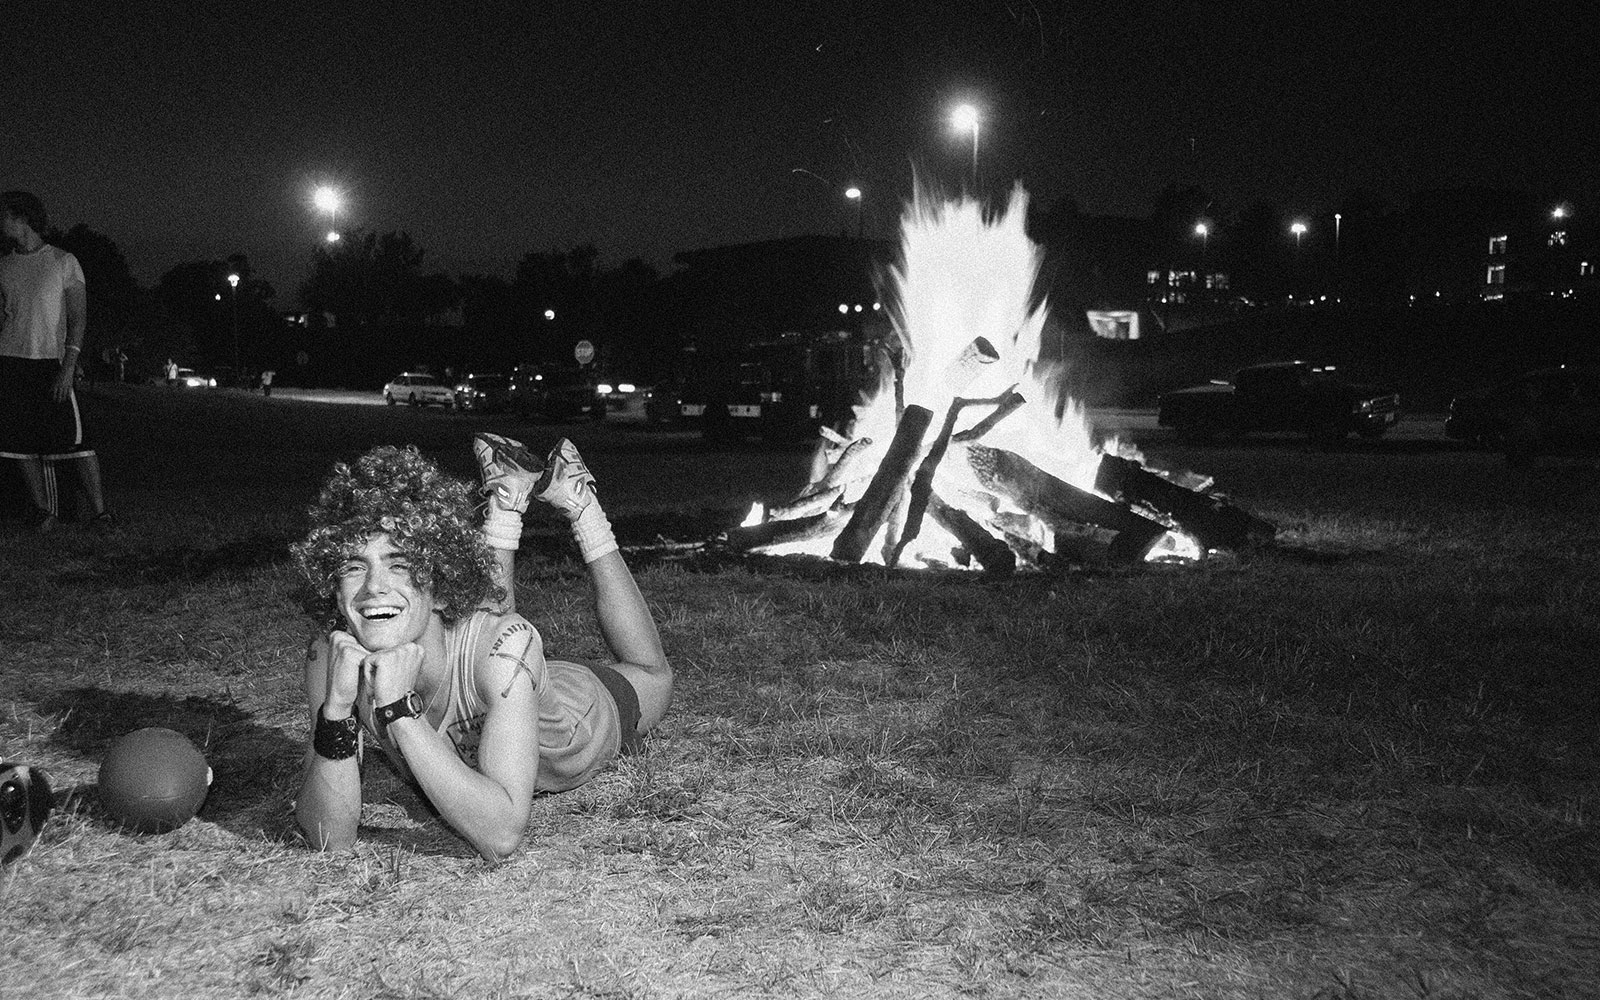 An old photo of an SIUE student at the Homecoming bonfire